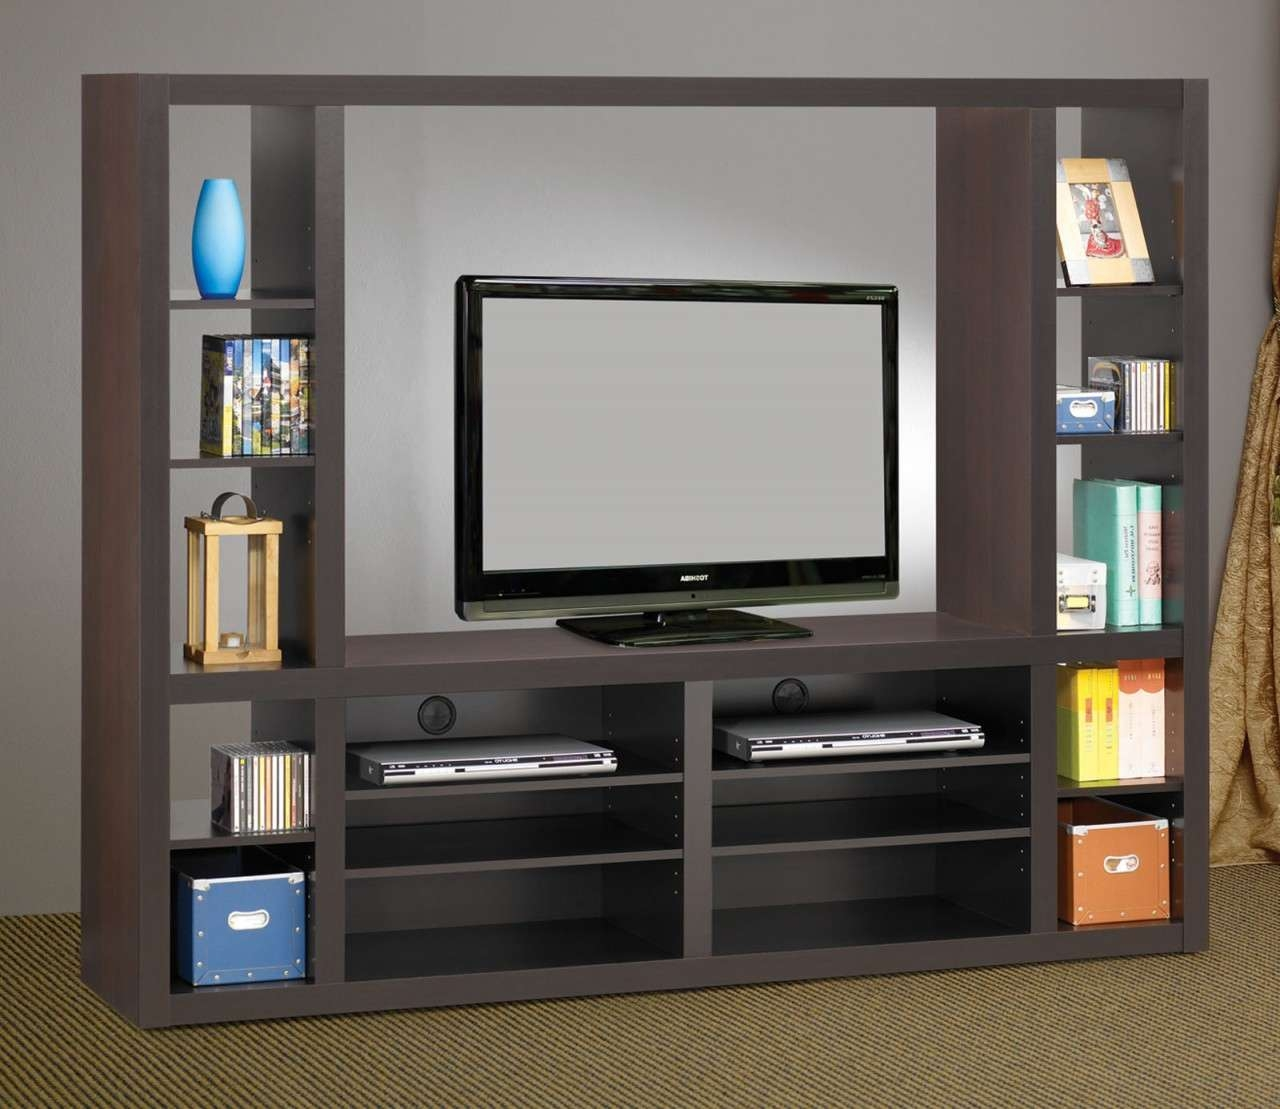 Flat Screen Tv Wall Unit Idea – Wall Units Design Ideas With Contemporary Tv Cabinets For Flat Screens (View 10 of 20)